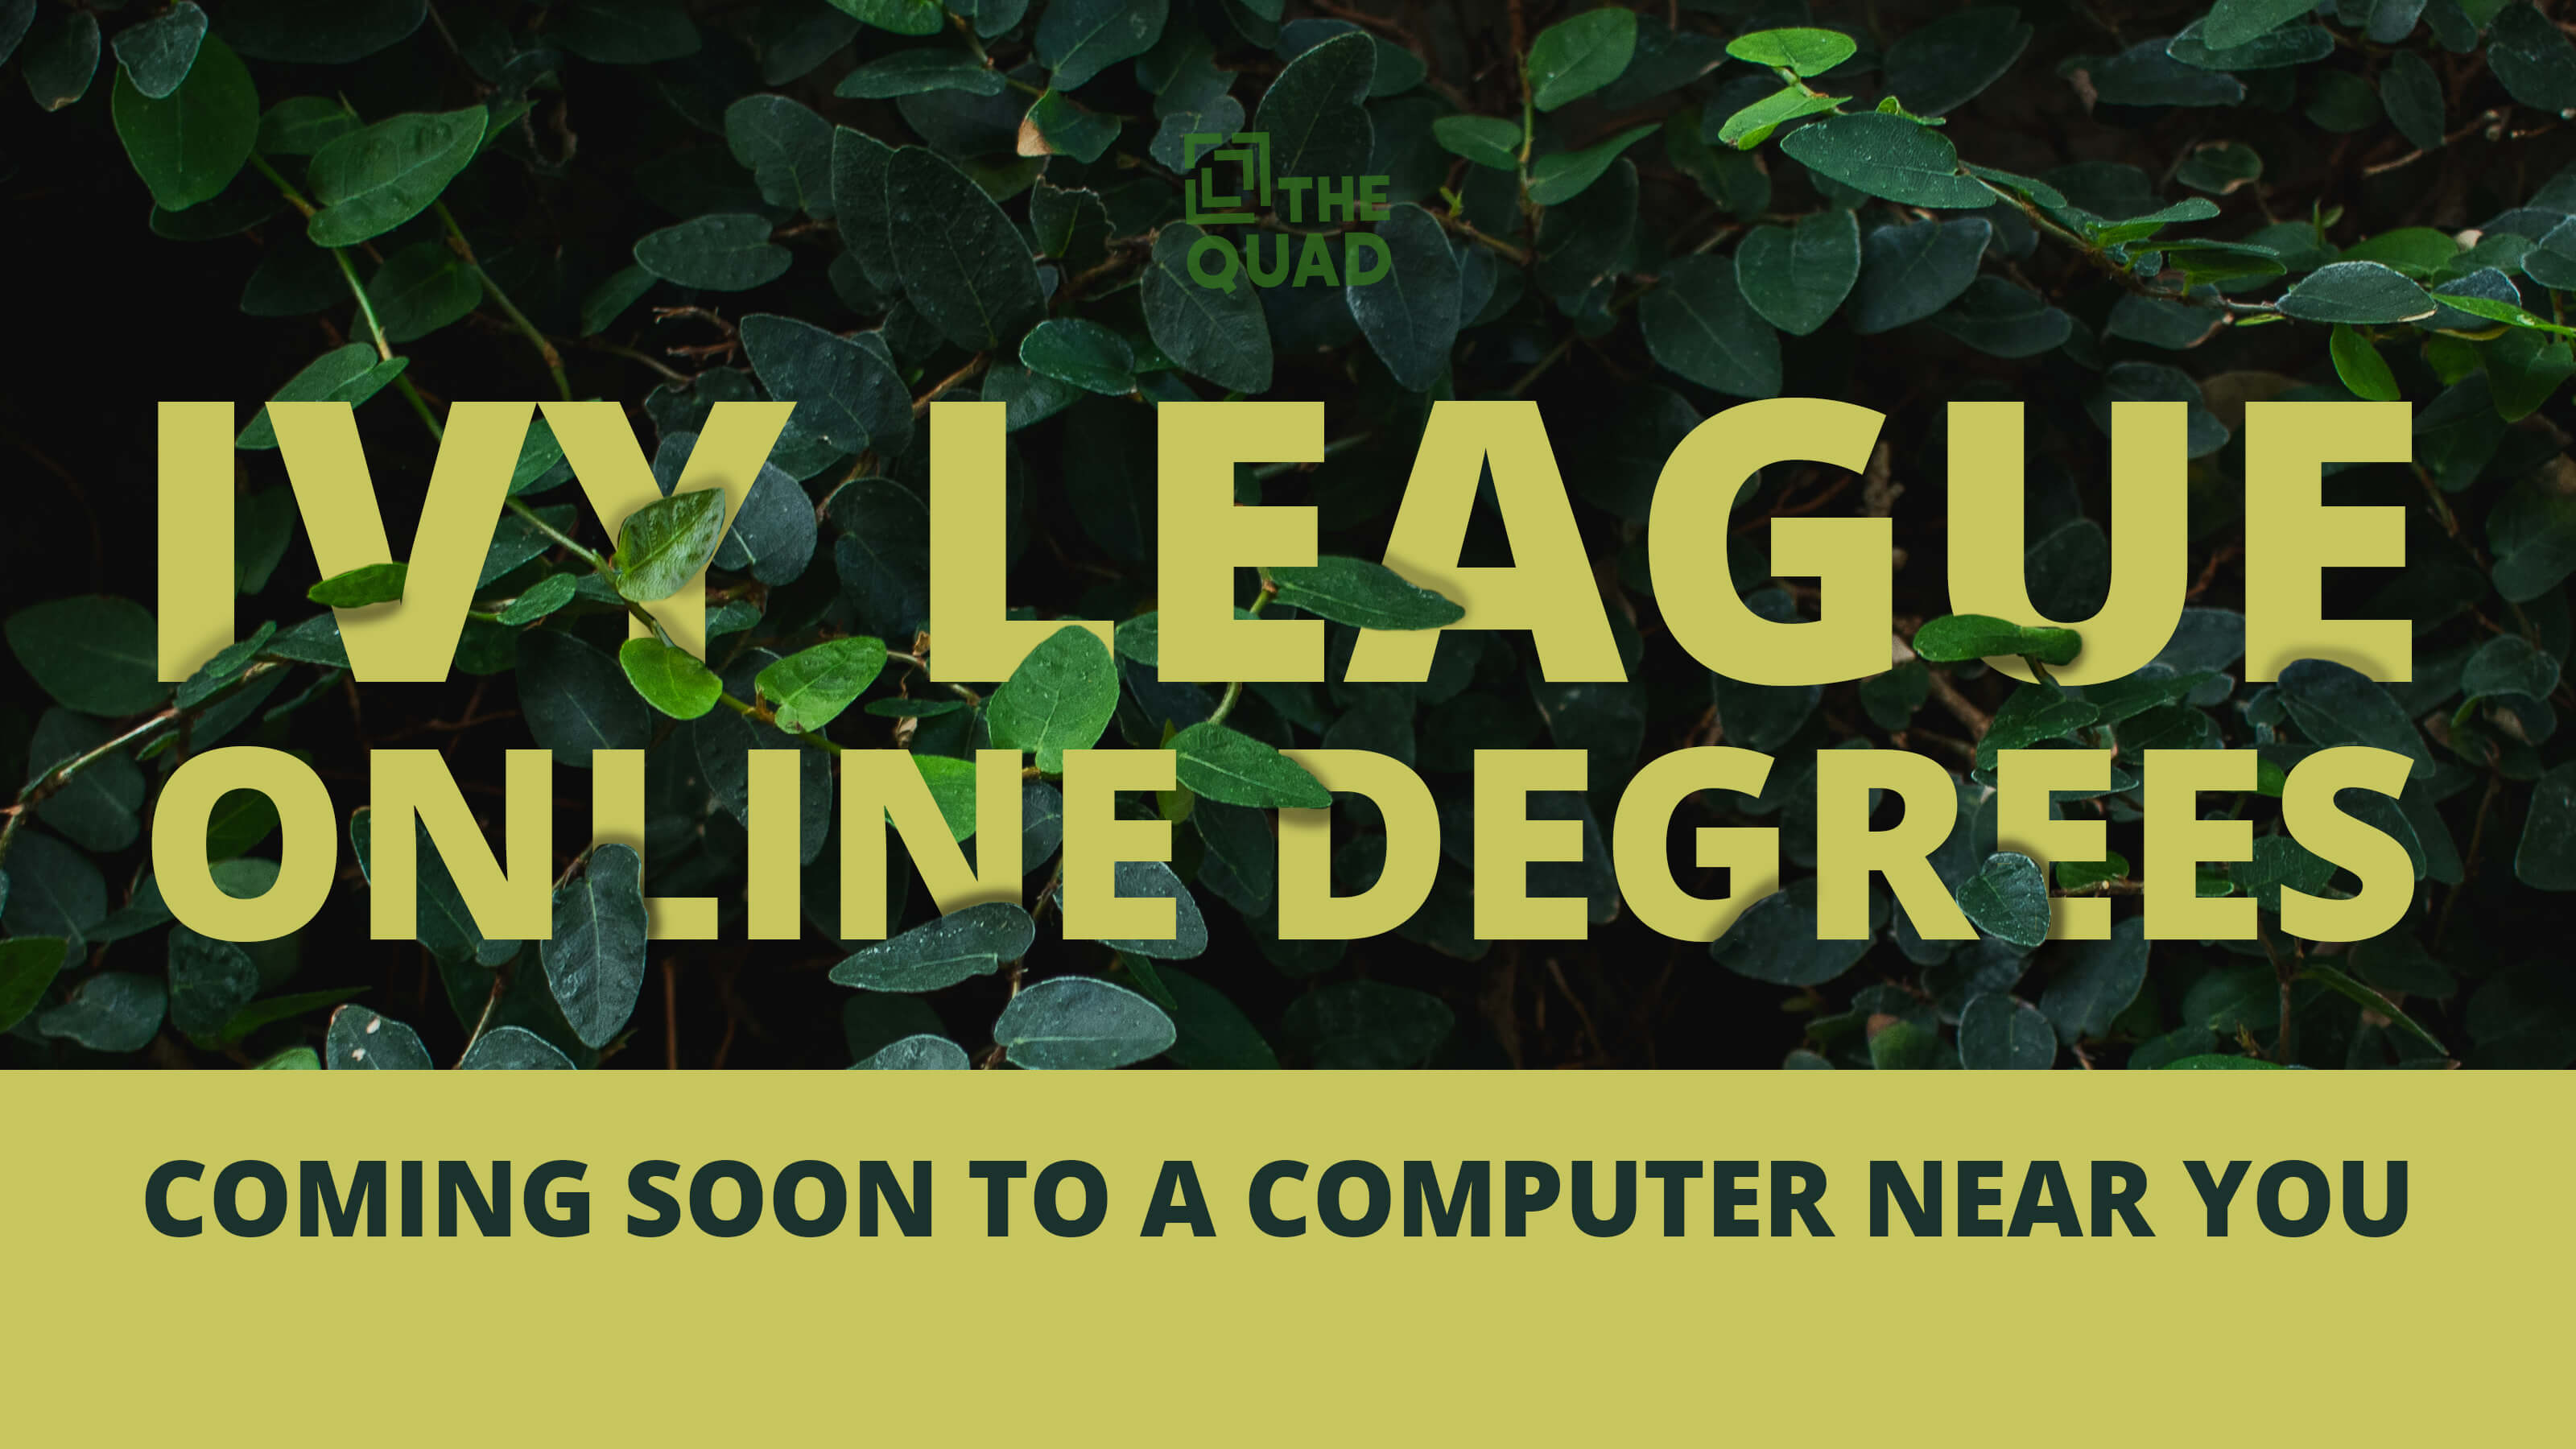 Ivy League Online Degrees   Coming Soon to a Computer Near You   The